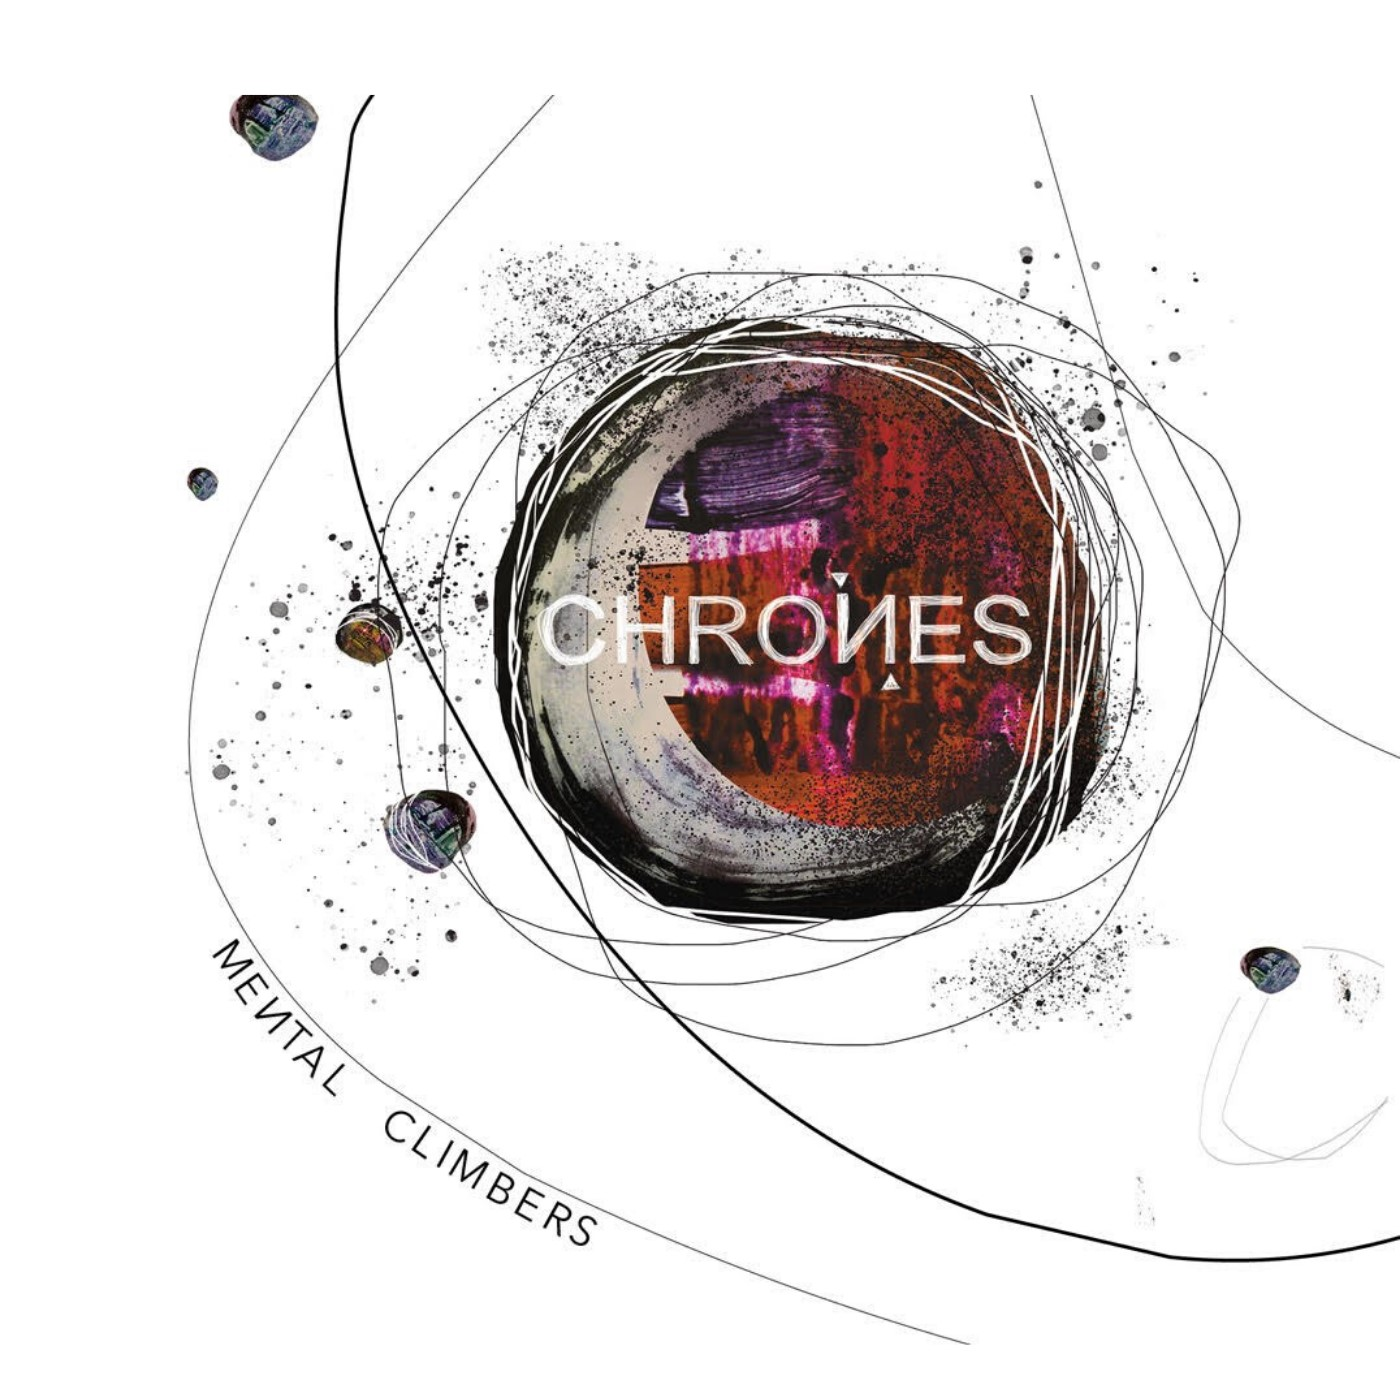 Chrones cover HD.jpg (277 KB)